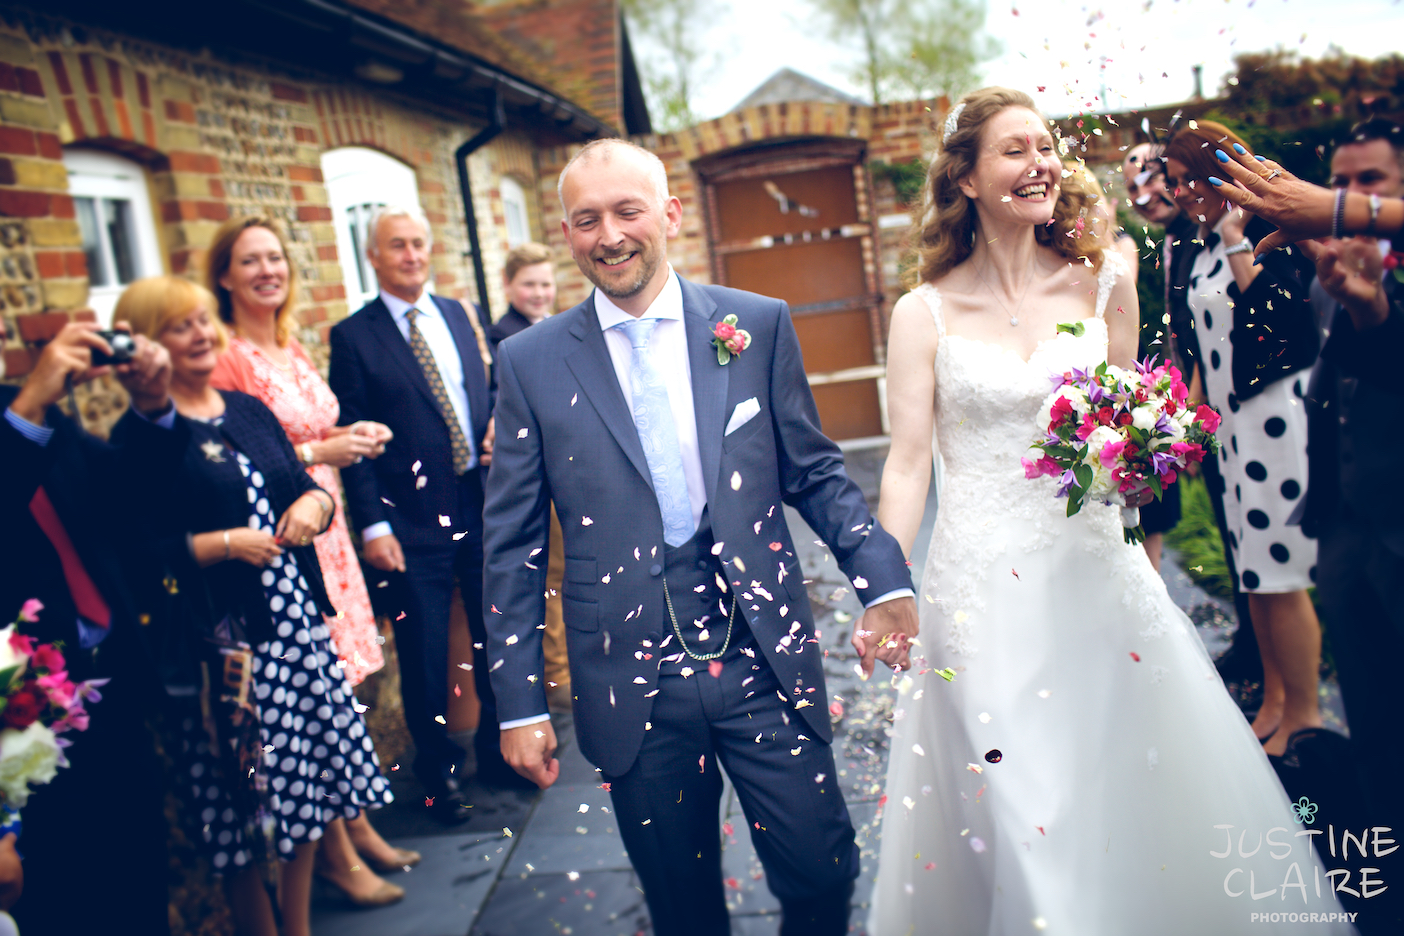 heidi Mark Southend Barns Wedding Photographers preferred suppliers Justine Claire 0640.jpg